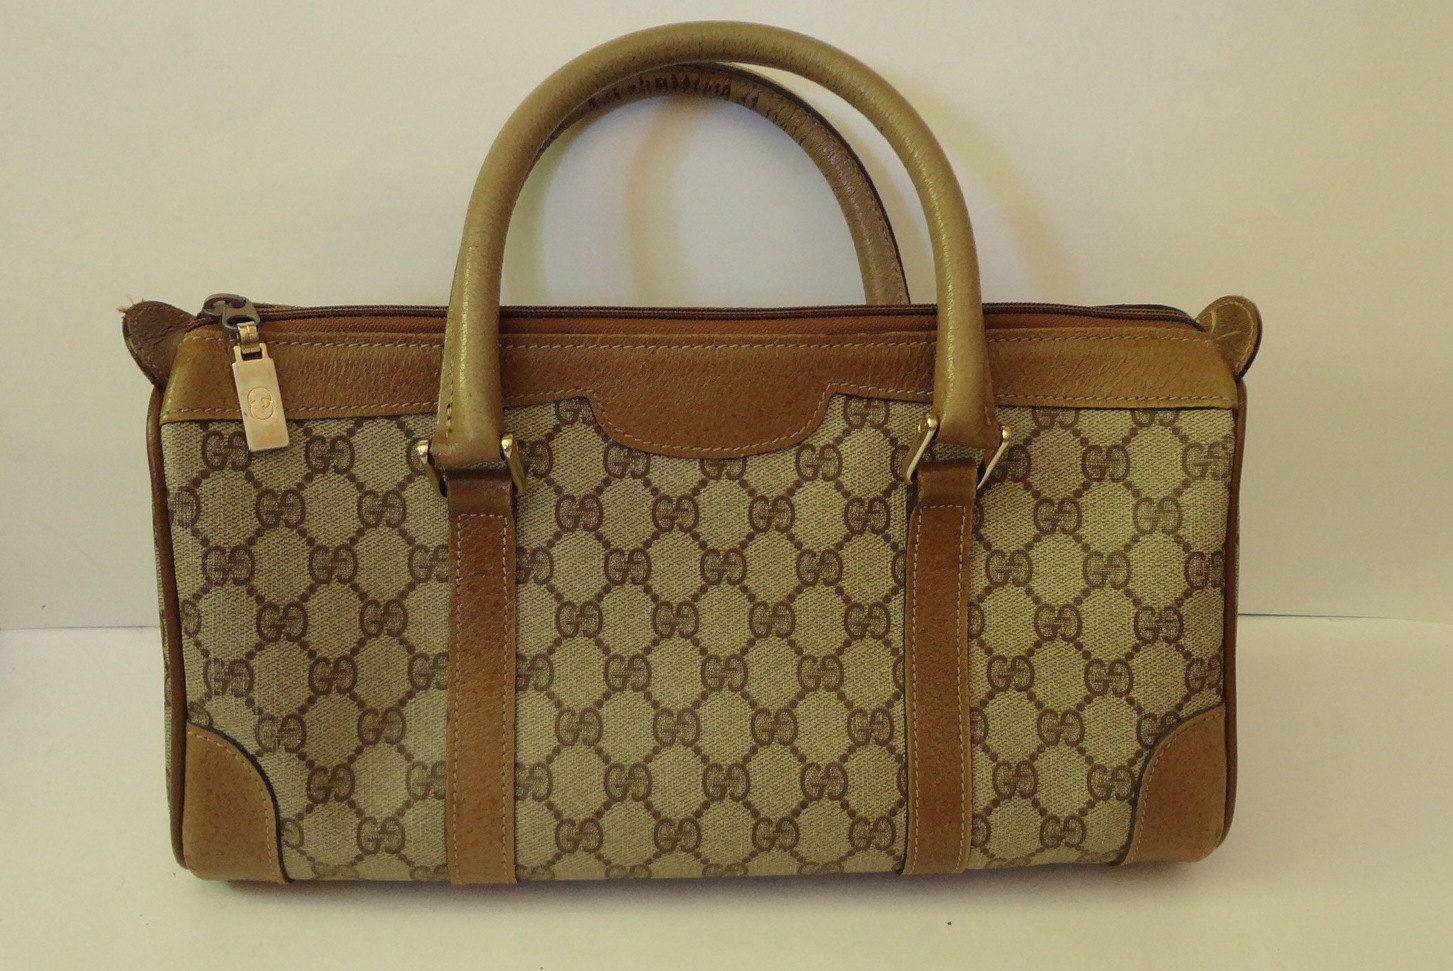 Etsy Vintage Gucci Authentic Vintage Gucci Doctor Speedy Monogram Handbag Bag